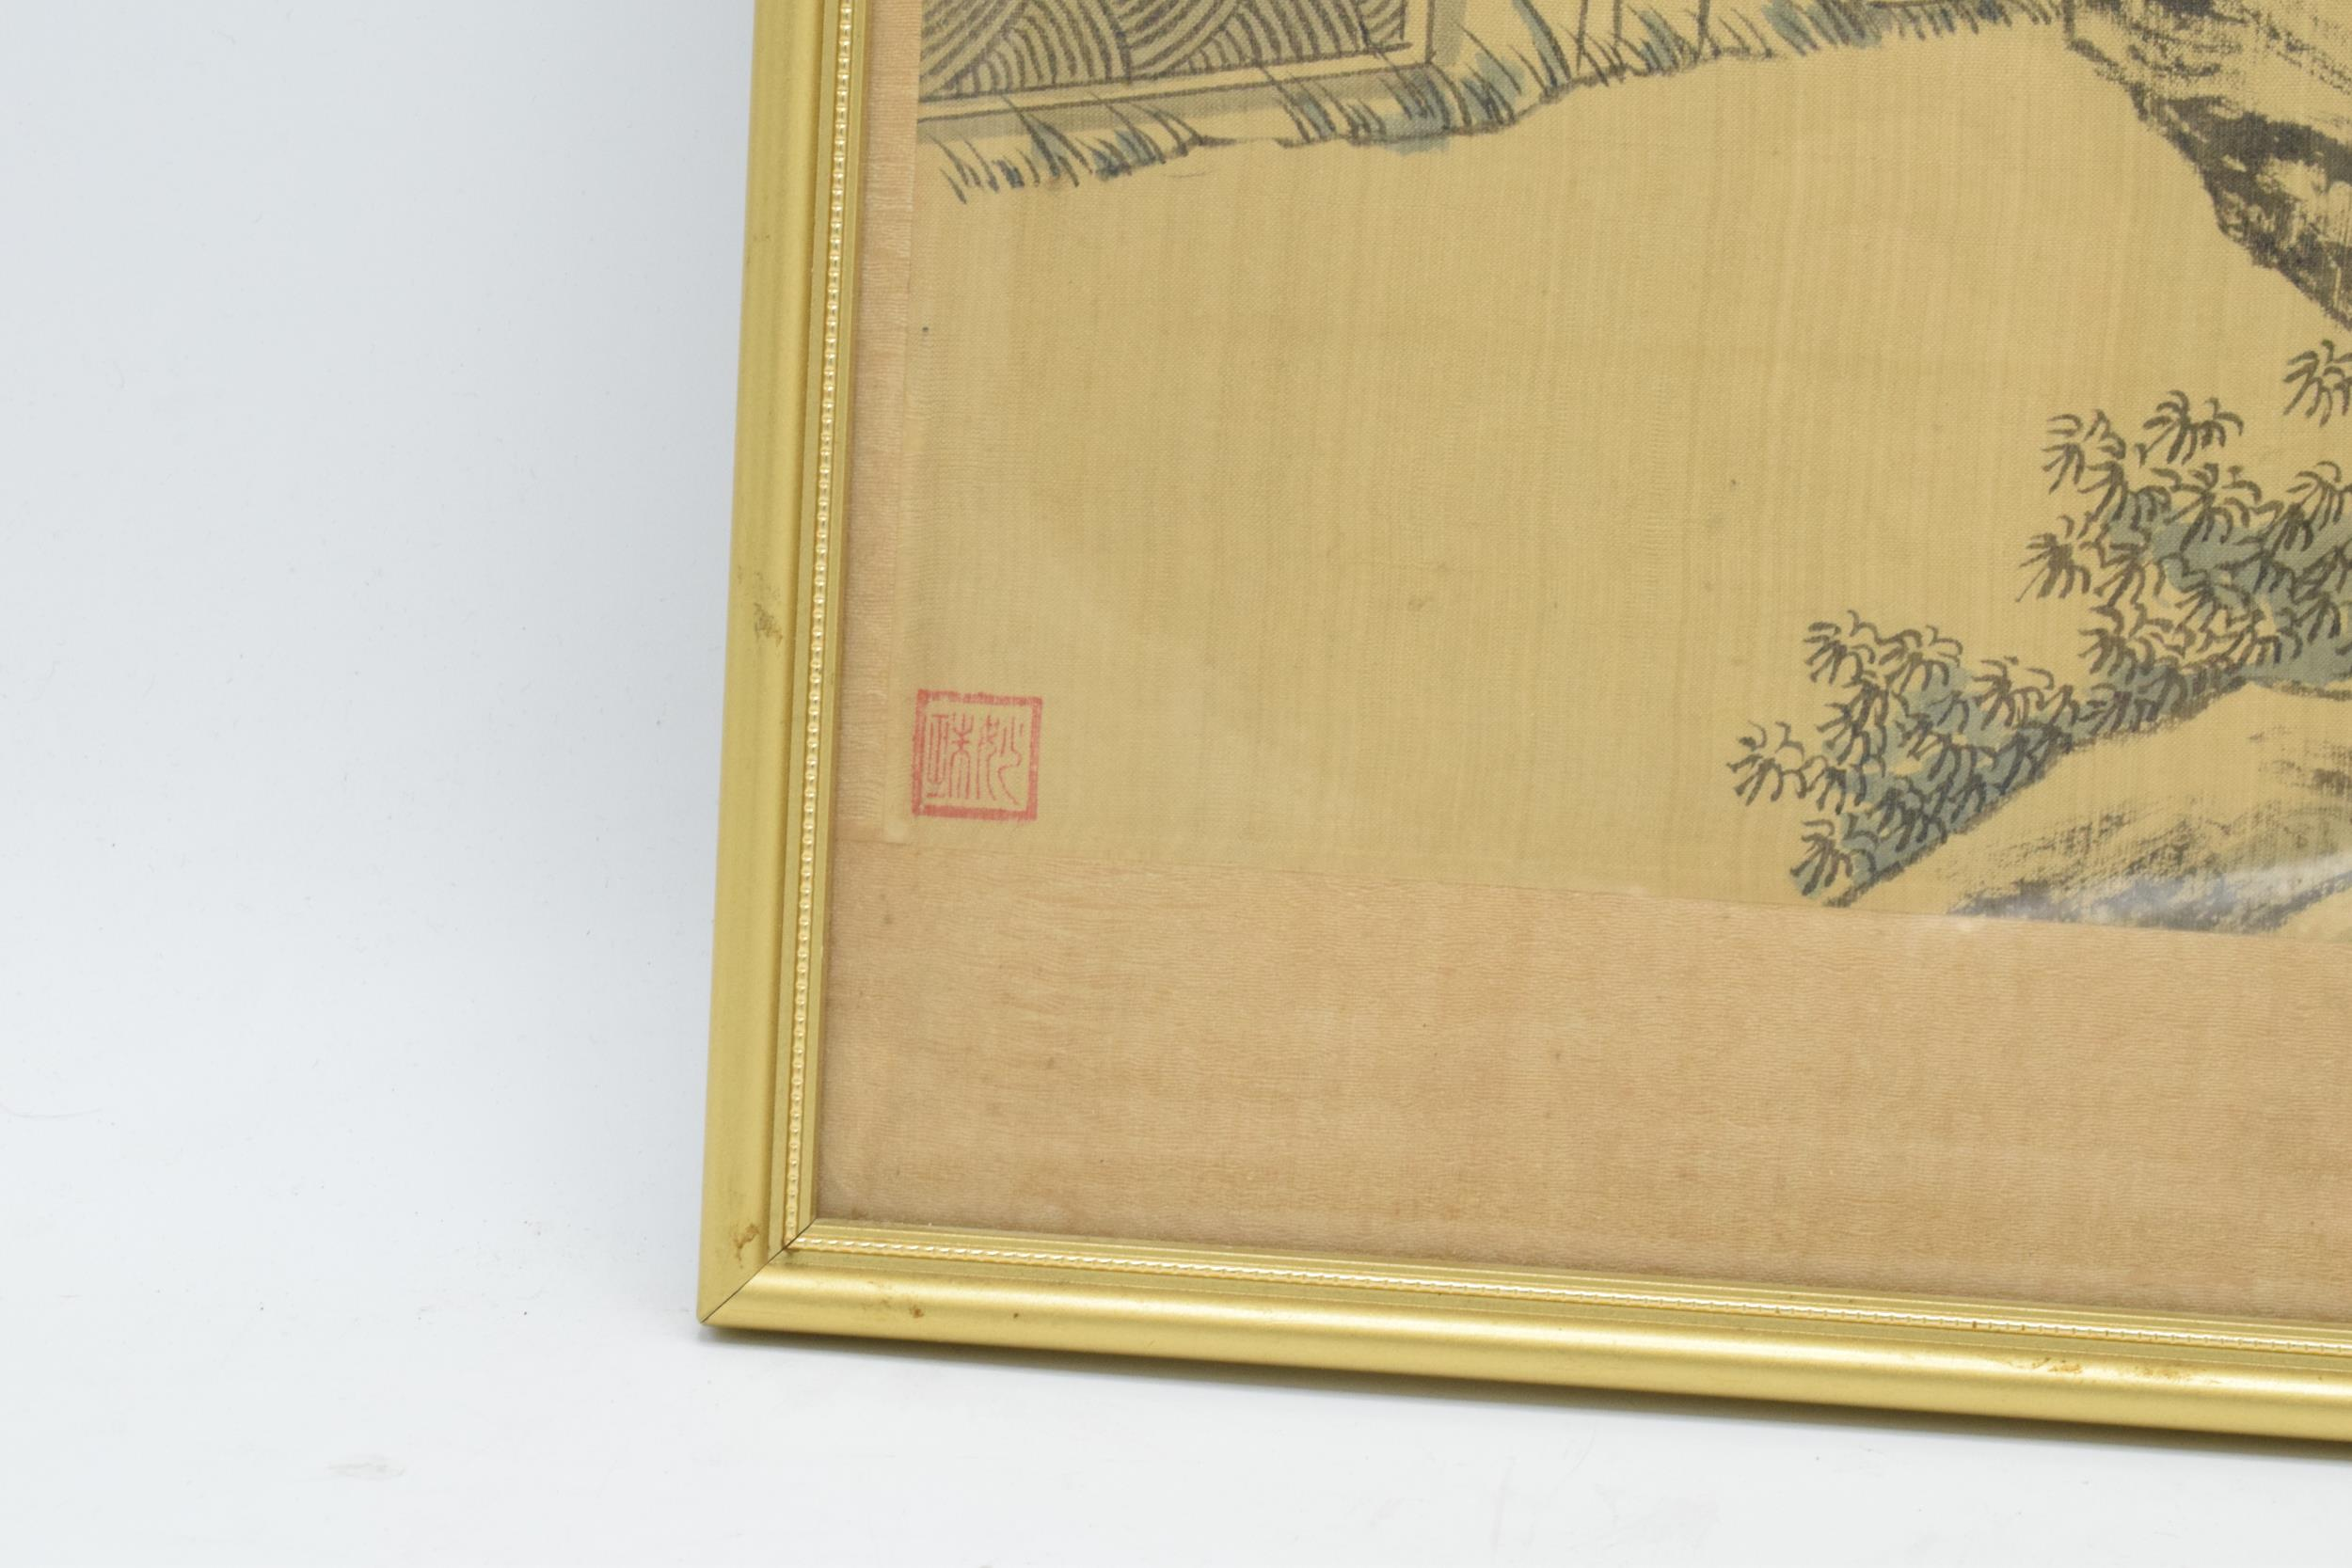 Meiji Japanese woodblock print depicting snowy mountain scene with man and young girl in front of - Image 5 of 6